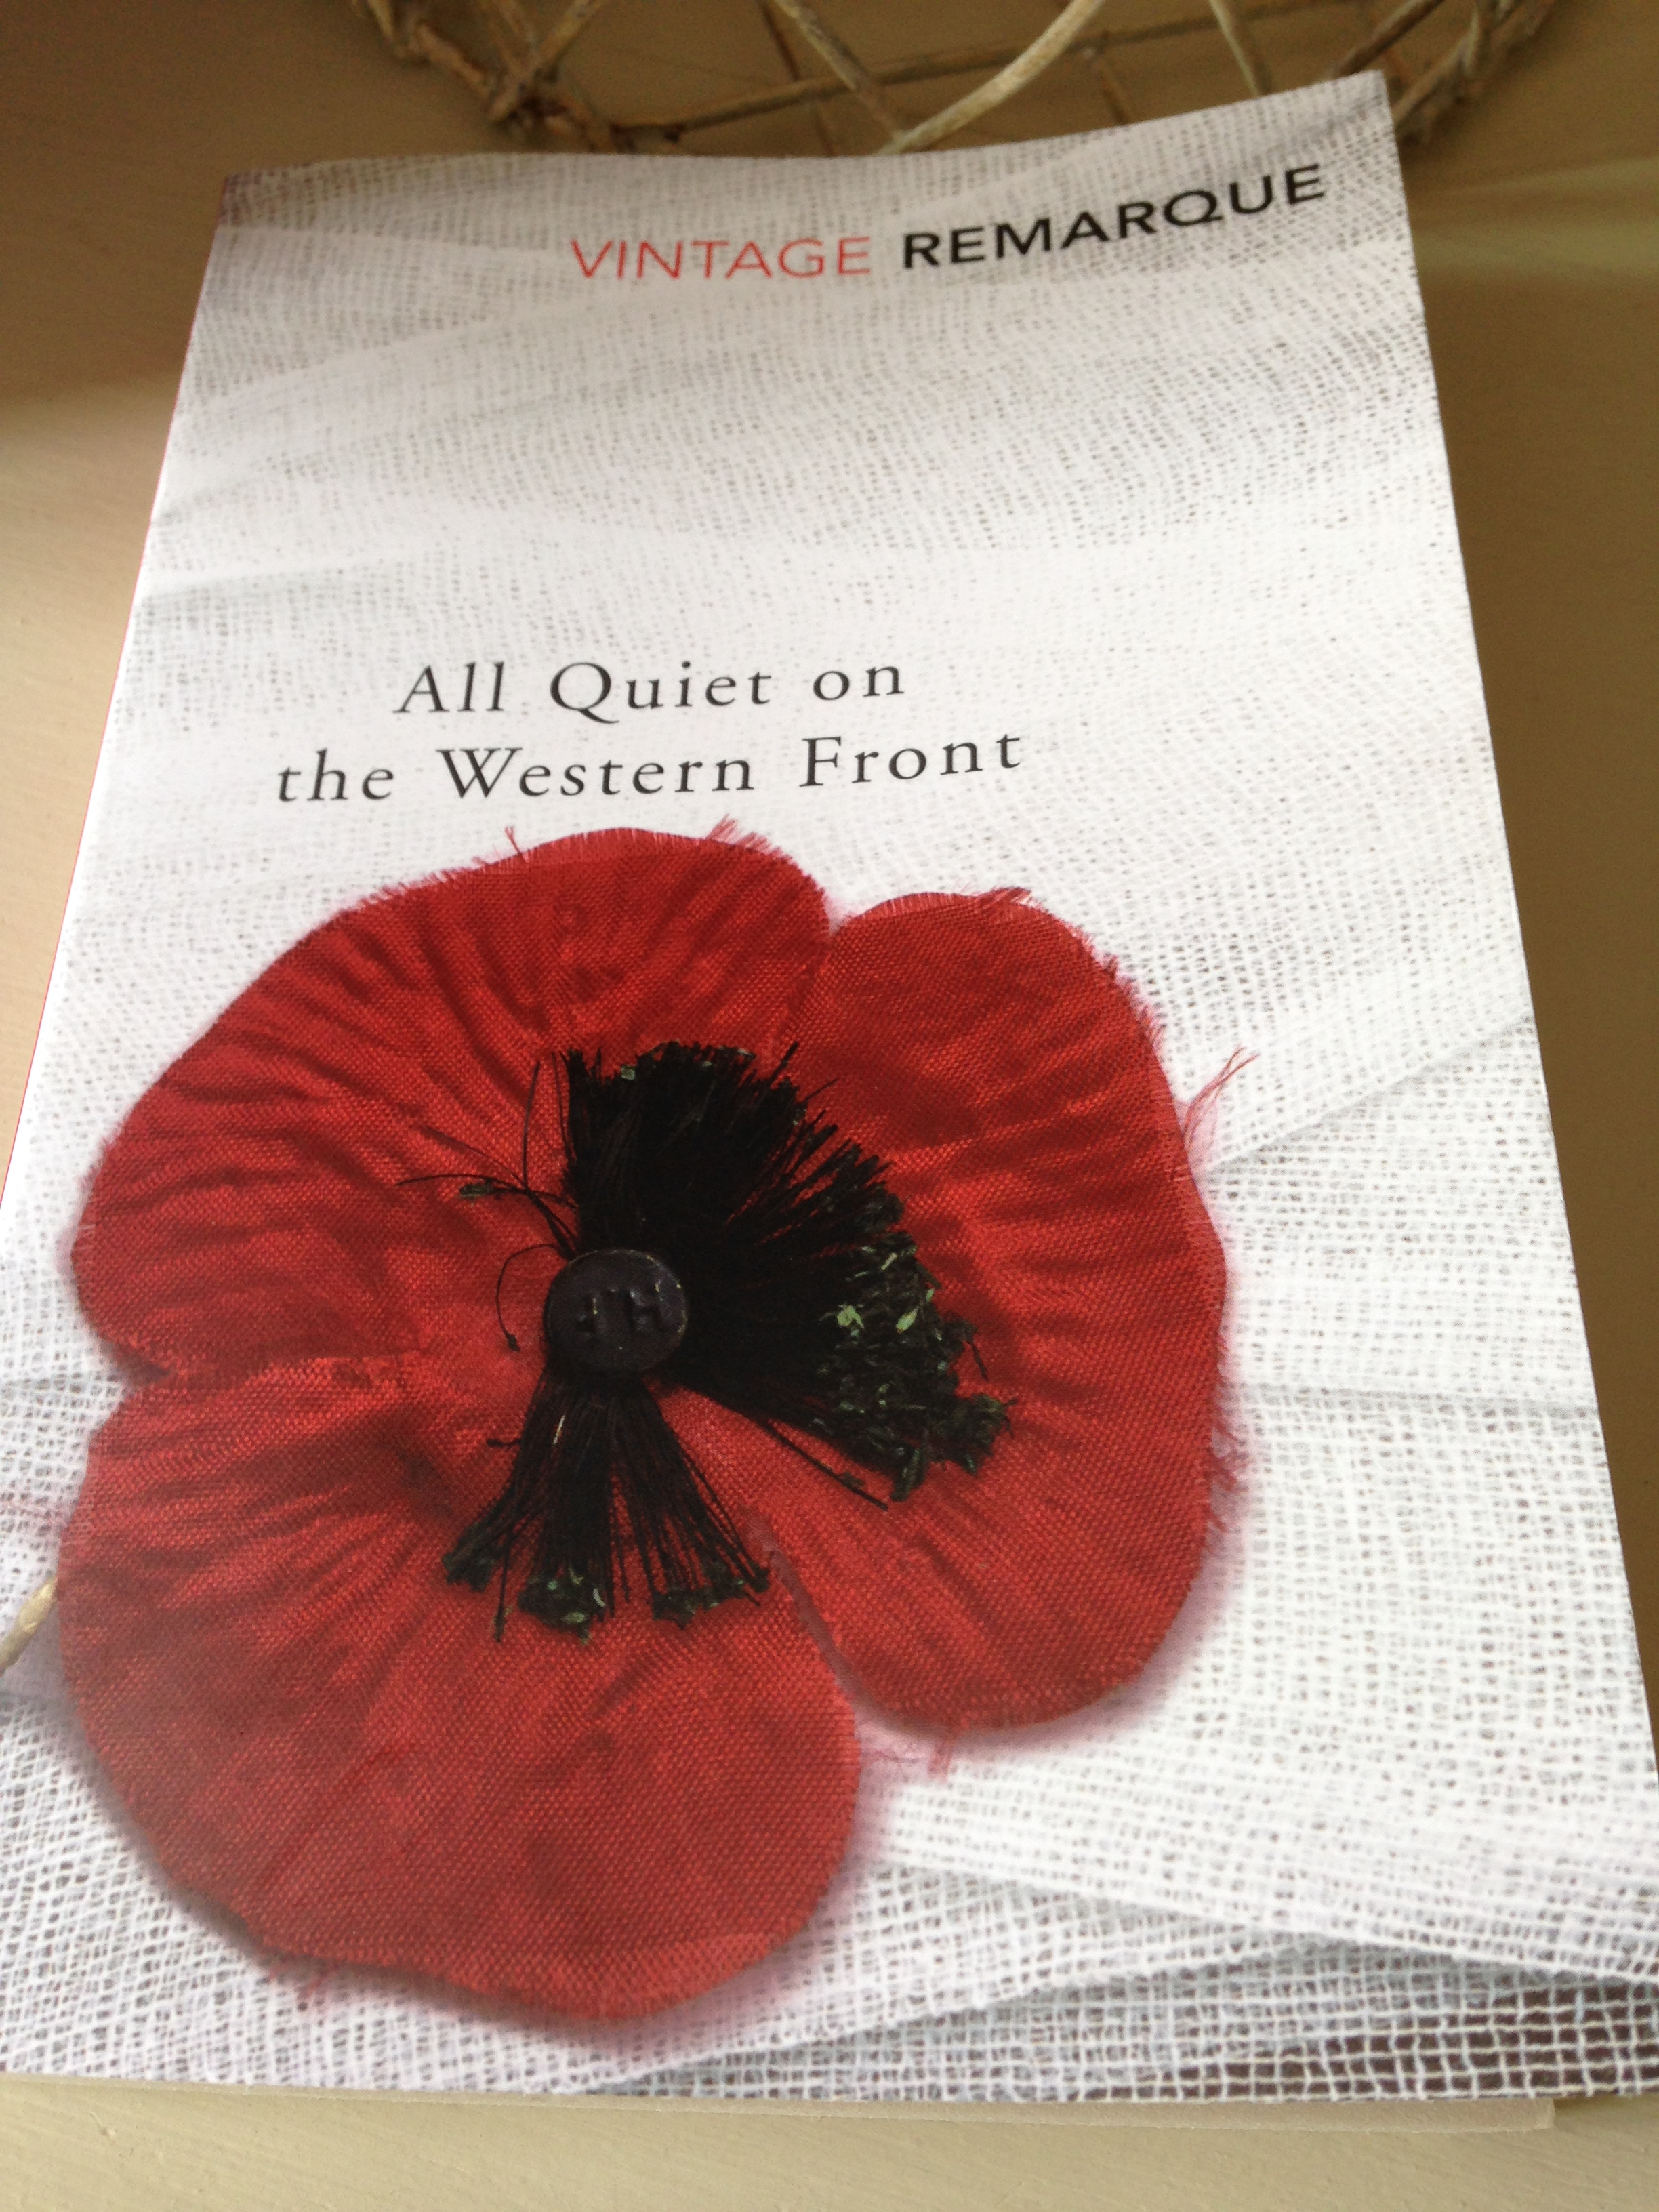 All Quiet on the Western Front Summary